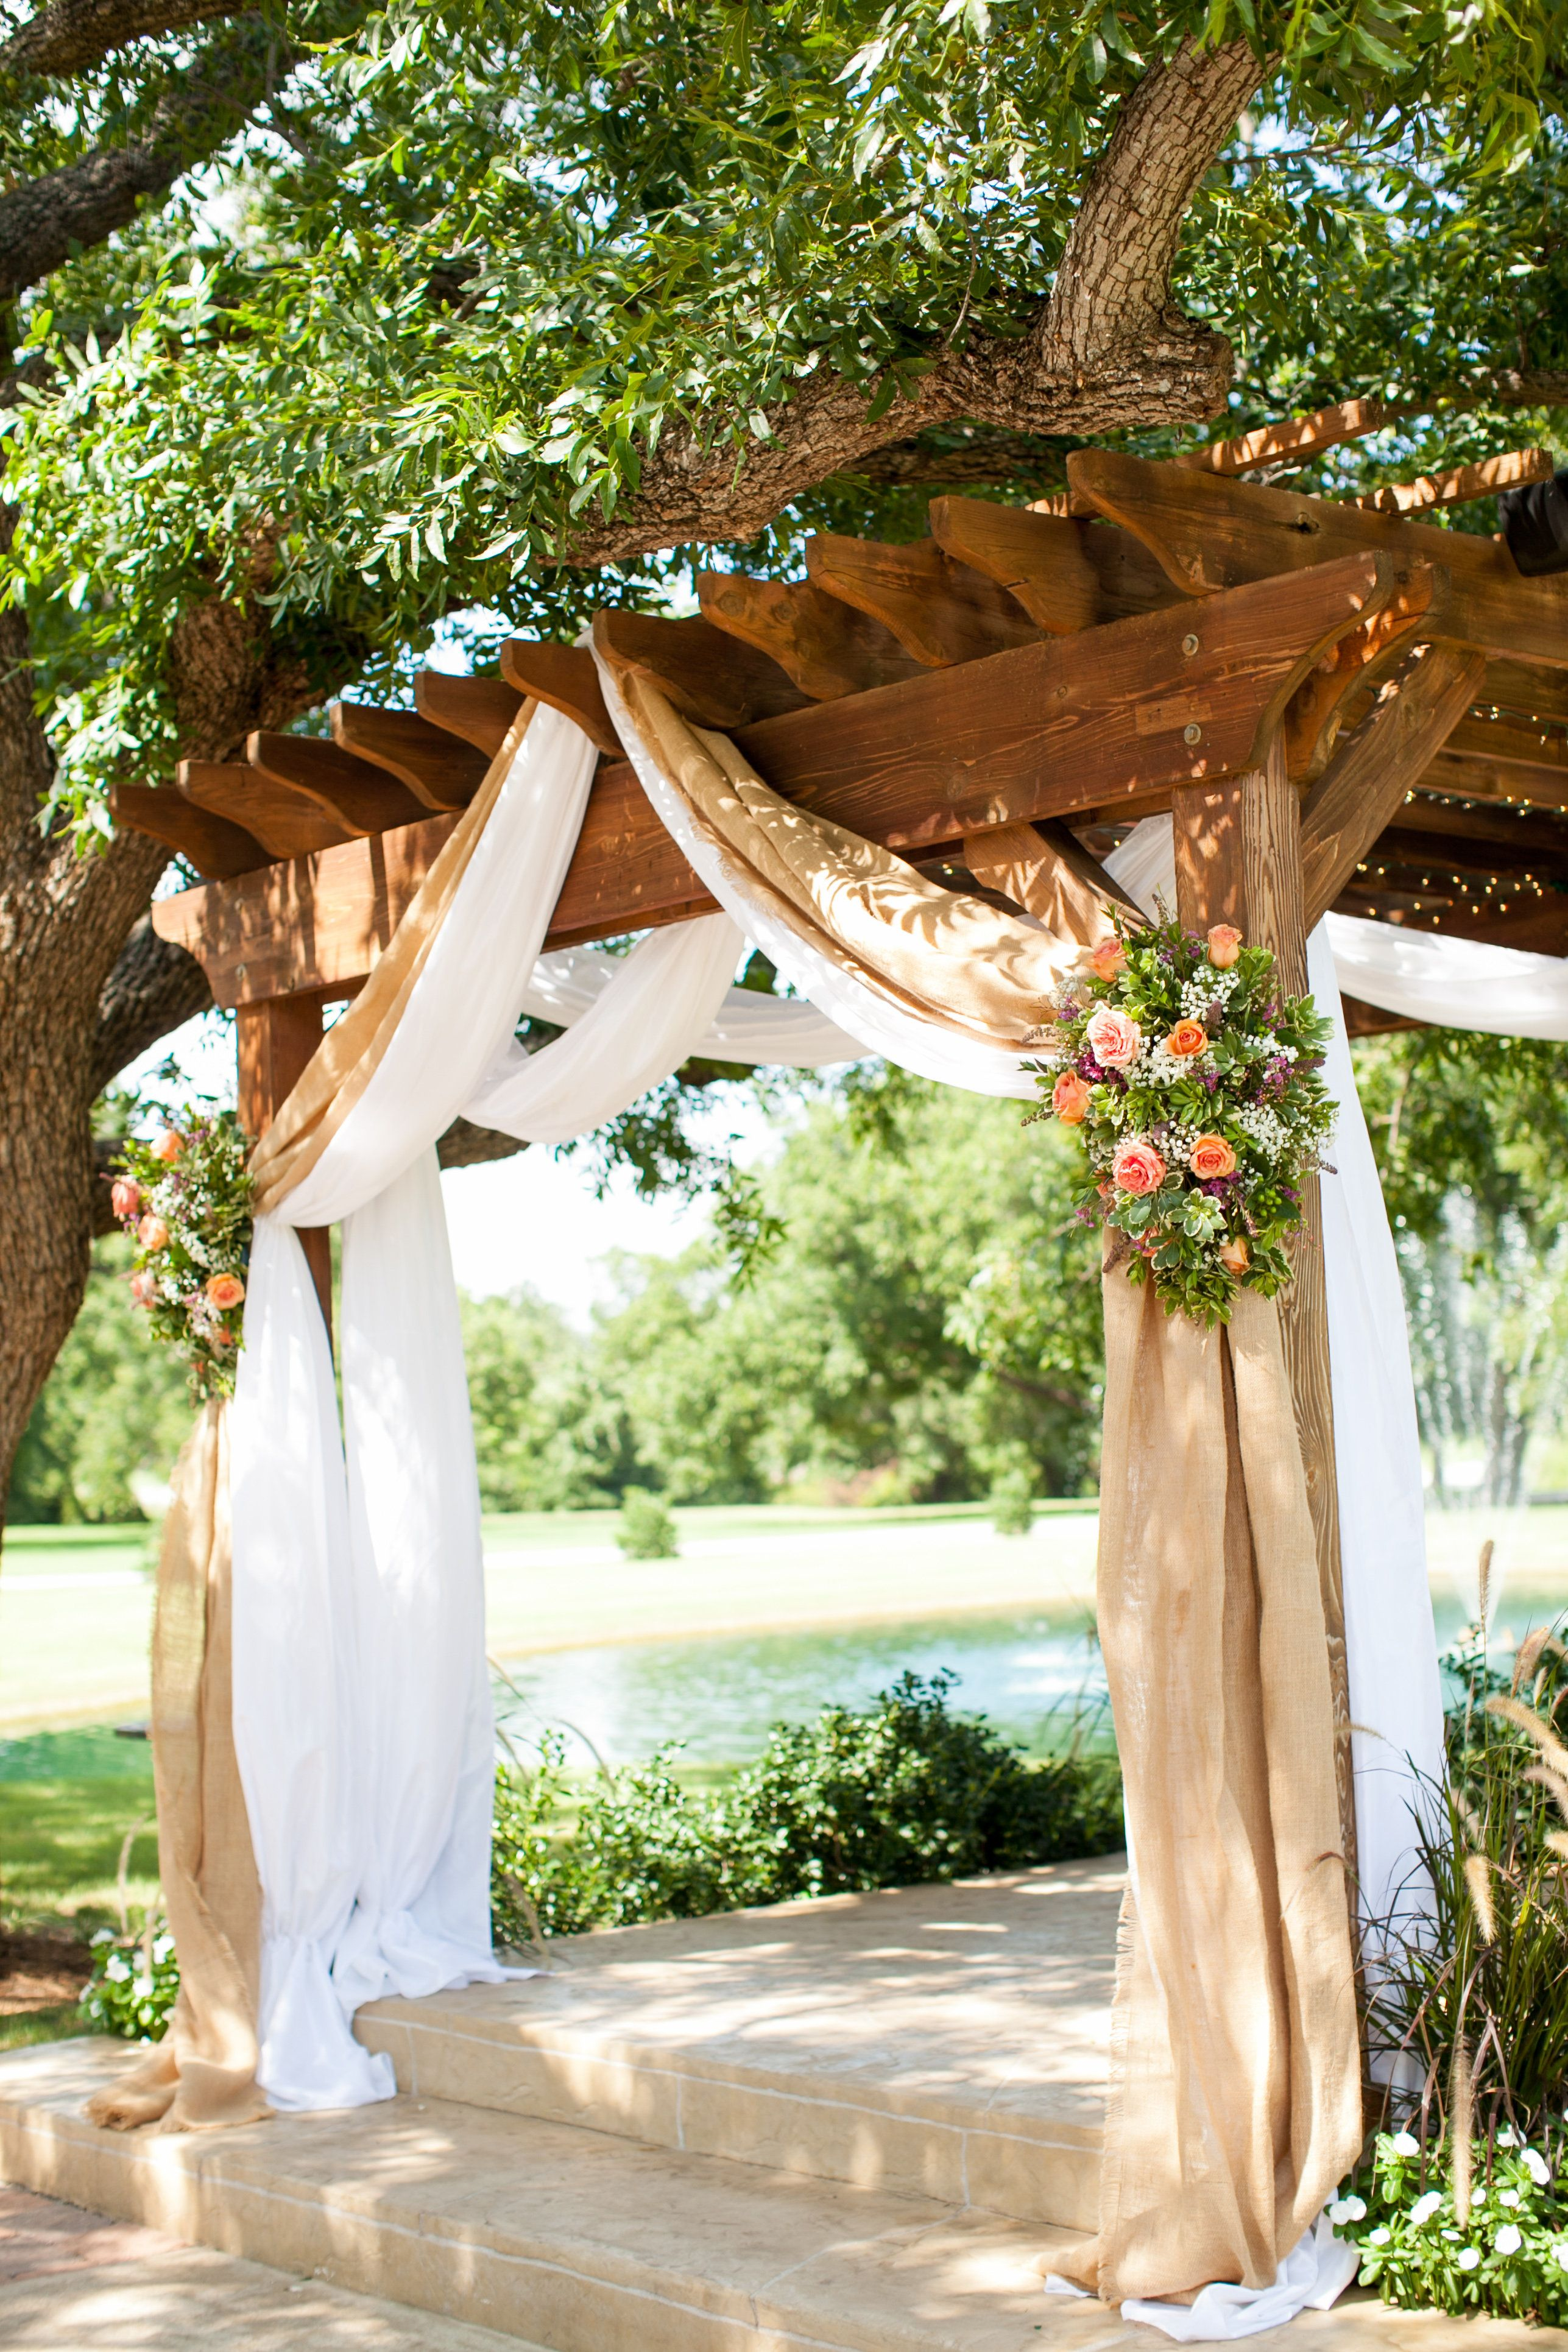 chelsie wedding details 0003 wedding arch rustic burlap on classy backyard design ideas may be you never think id=26196